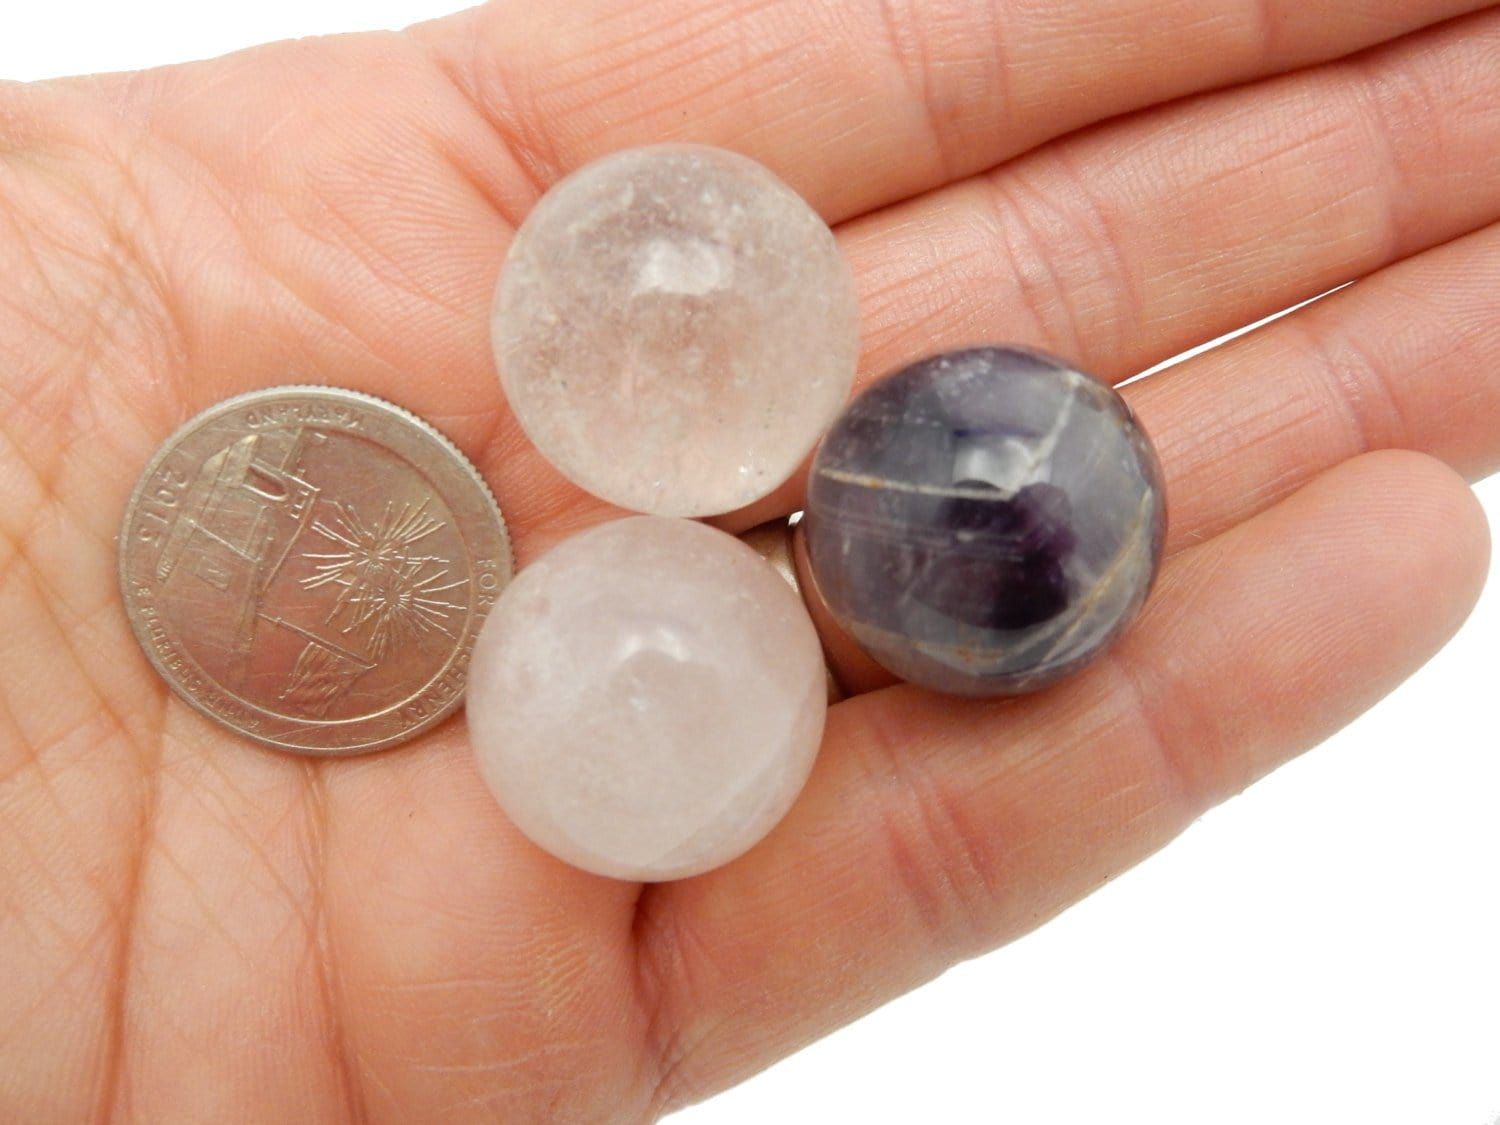 Chakra Set - 3 Piece Ball Chakra Set - Sphere Shaped Stones - Rose Quartz - Crystal Quartz - Amethyst - RK147B2